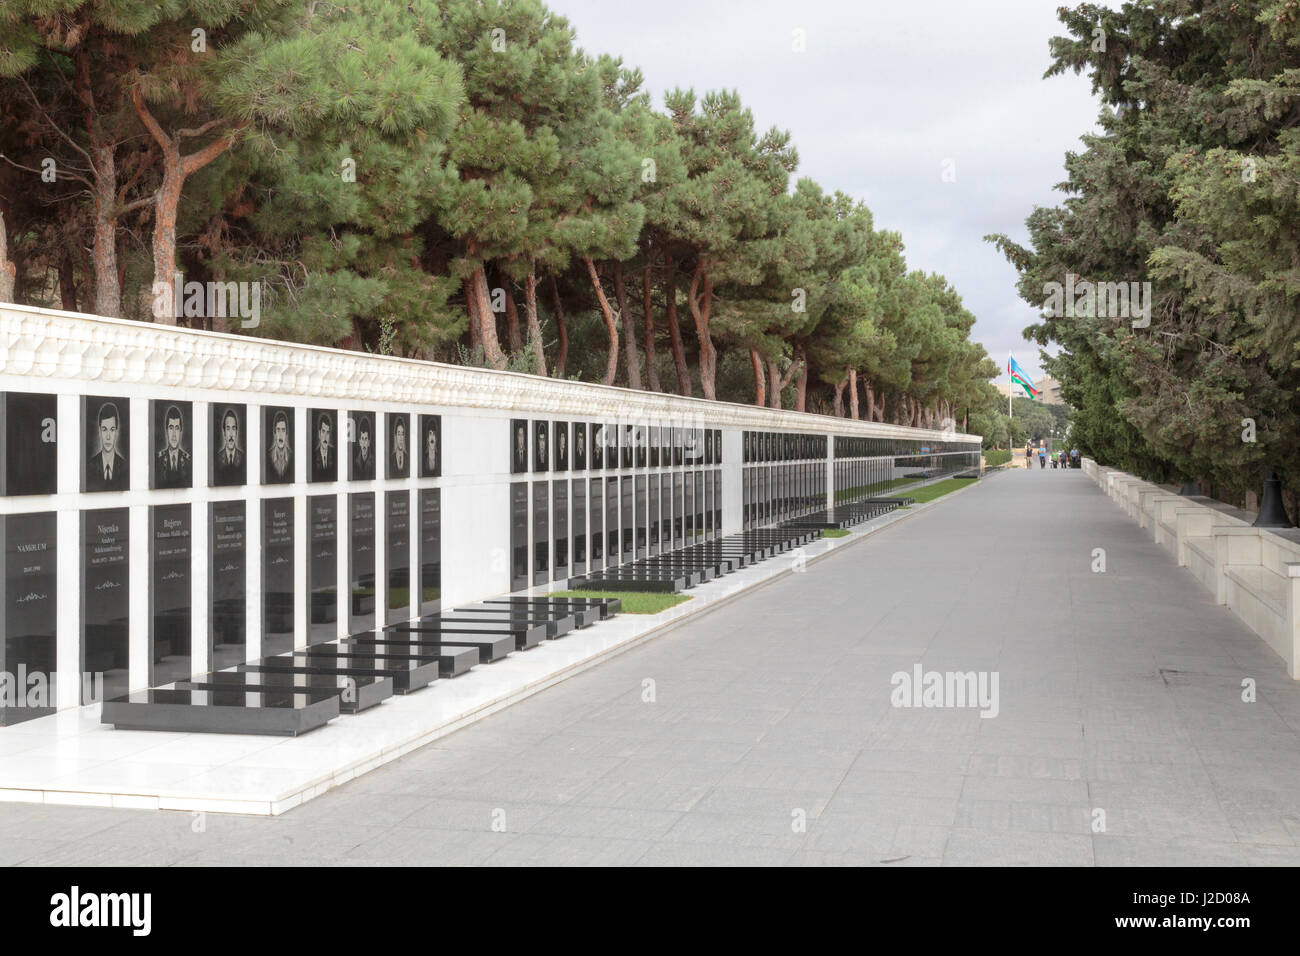 Azerbaijan, Baku. Martyrs' Lane, a memorial and burial site for Azerbaijanis killed by Soviet soldiers in Black Stock Photo